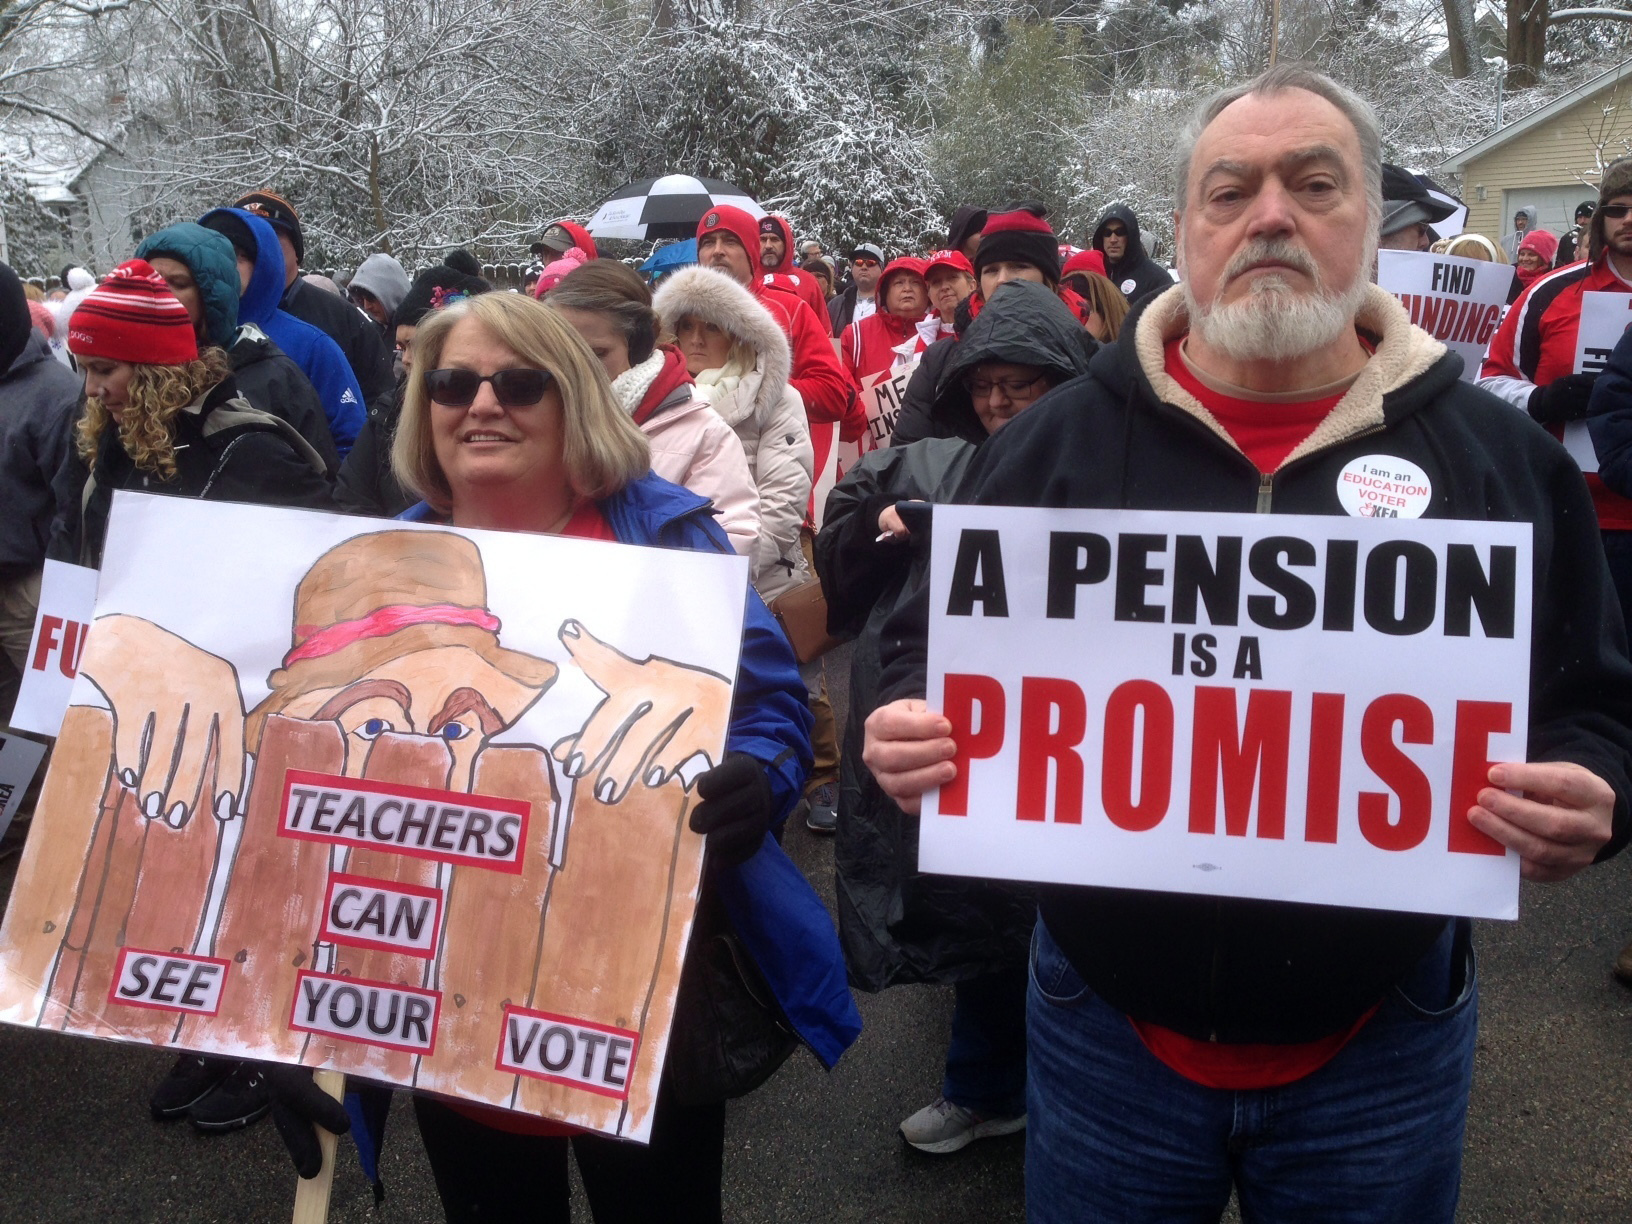 Debbie Burke, left, an elementary school teacher in Pike County, and her husband Gary Burke rally against a proposed pension overhaul bill, in Frankfort, Ky., March 21, 2018.